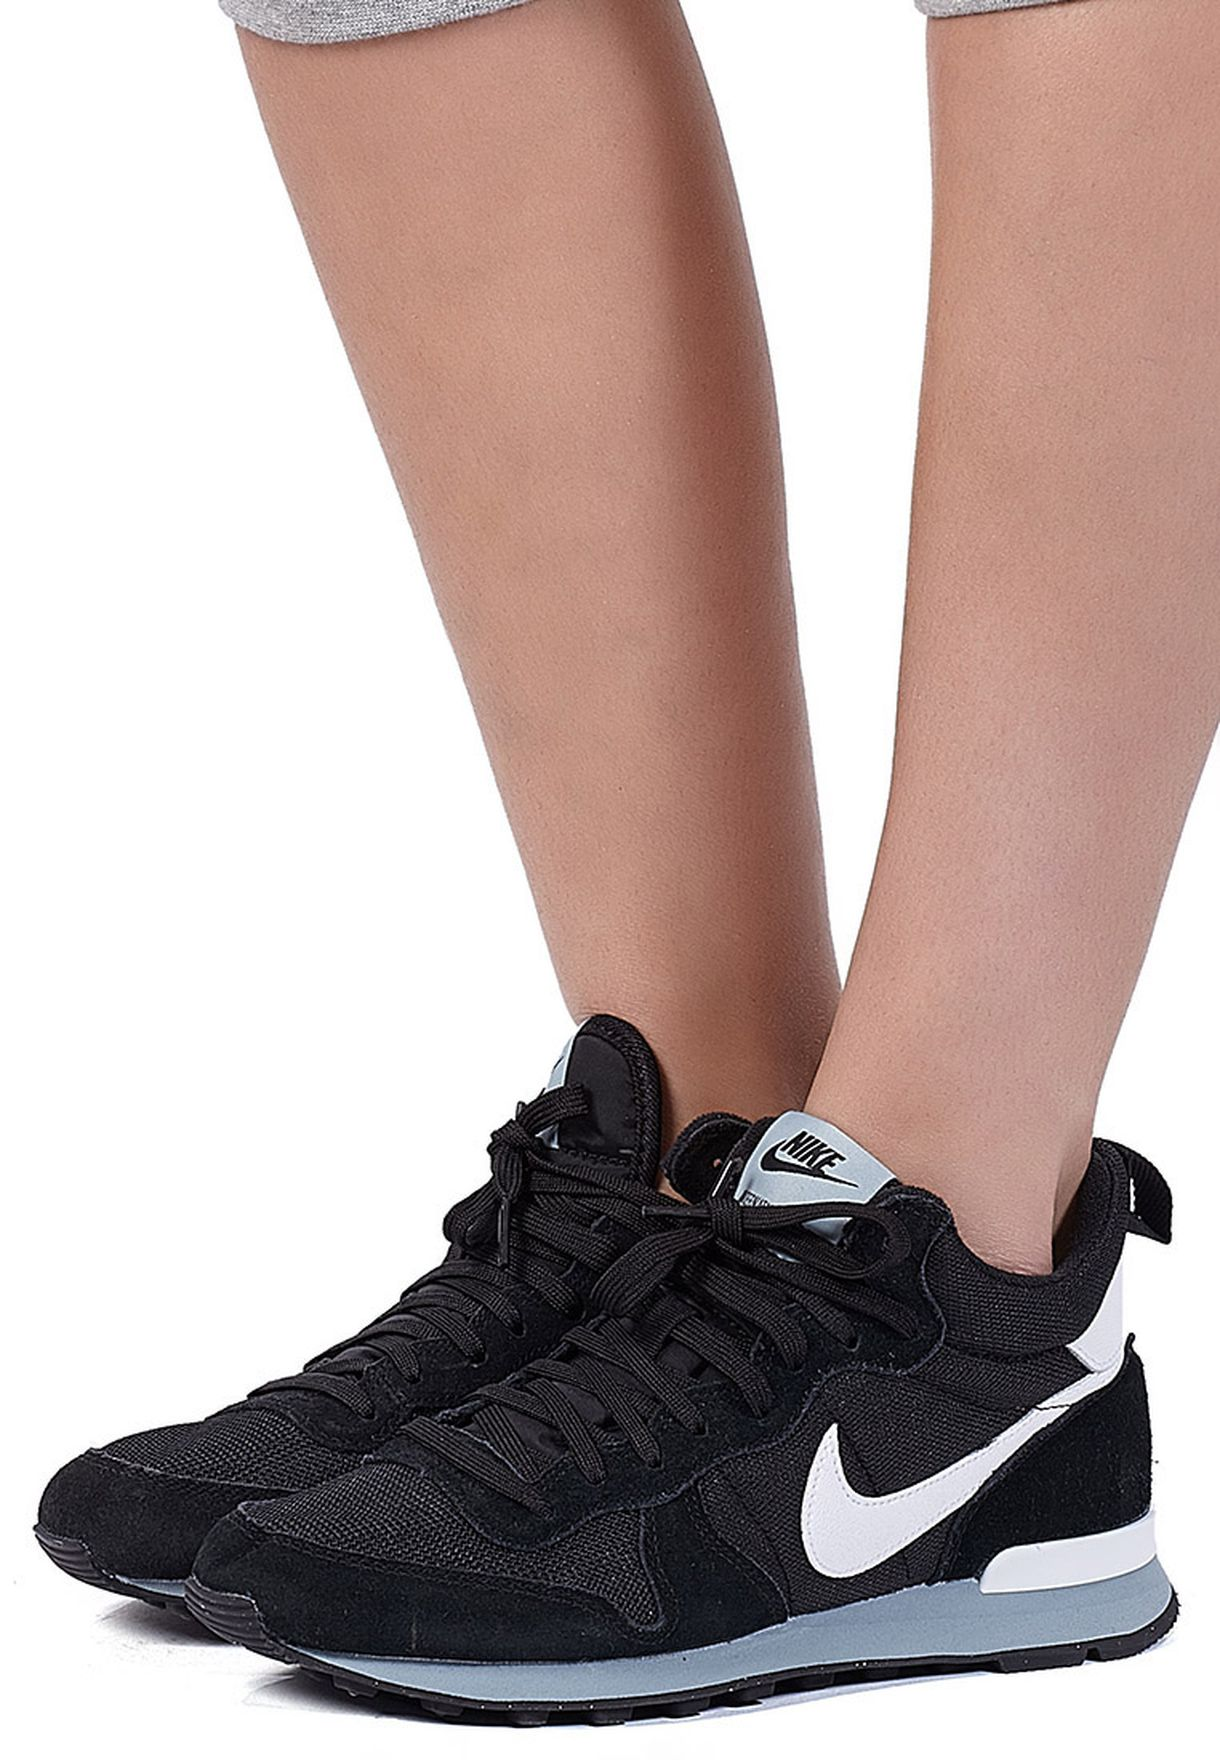 official photos 46459 f80af where to buy nike. internationalist mid sneakers 8a56f 7fbfc